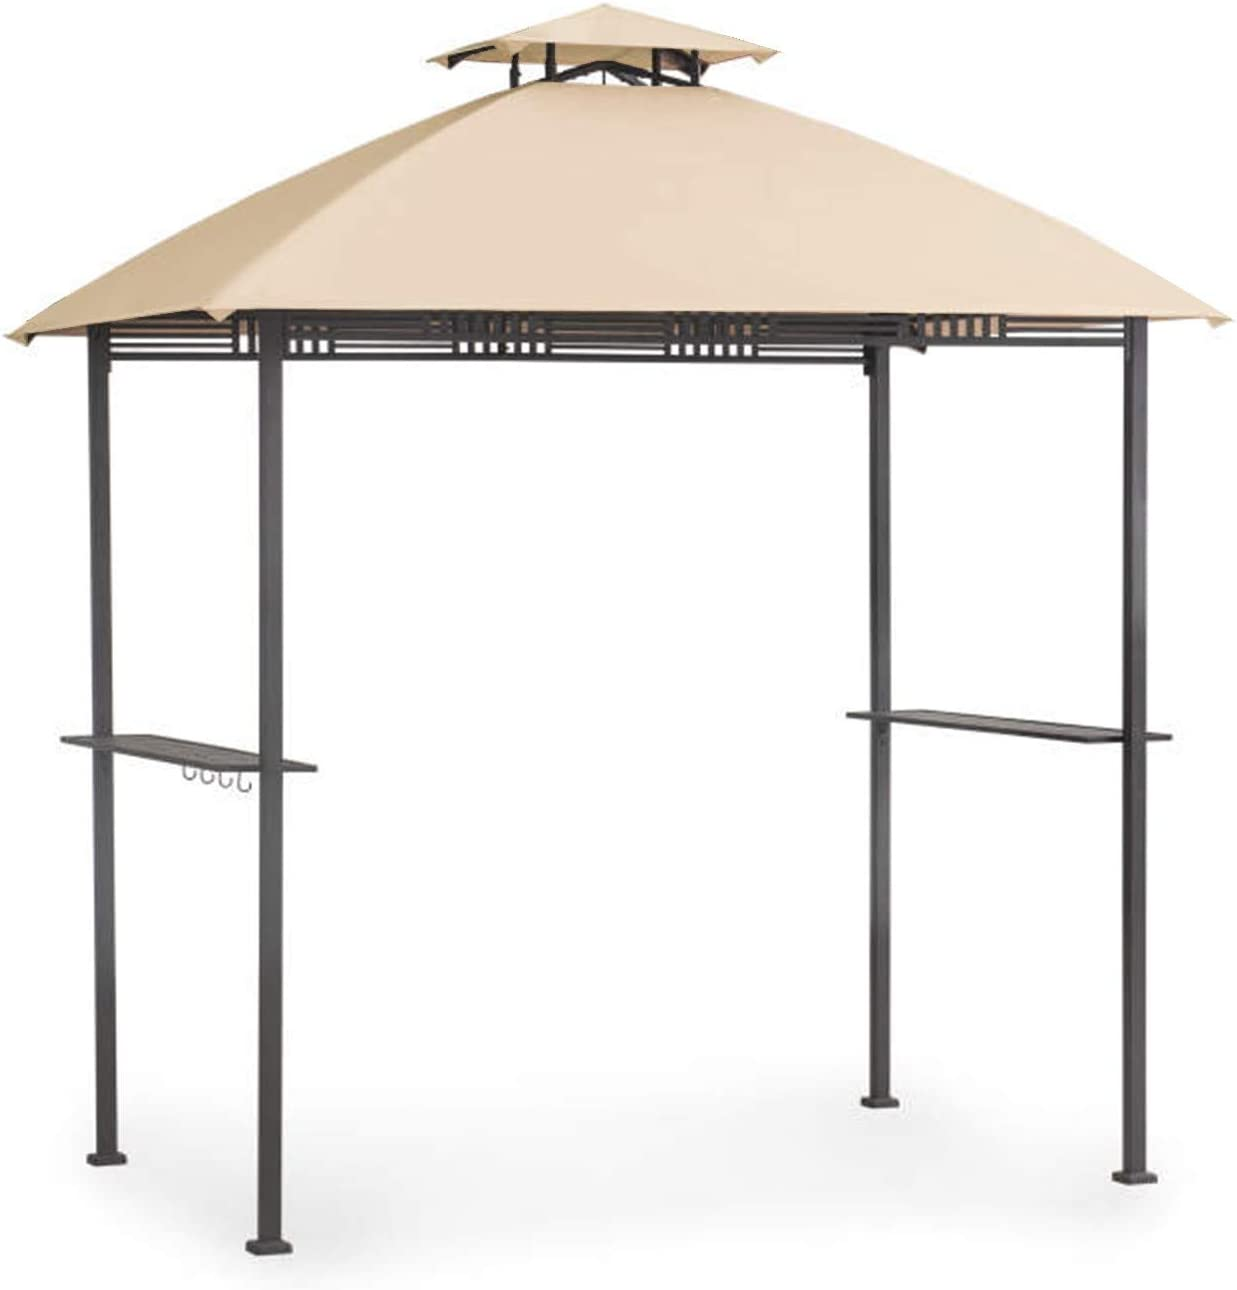 Garden supreme Winds Replacement Canopy Top Grill for Westbrook Ga Rapid rise Cover